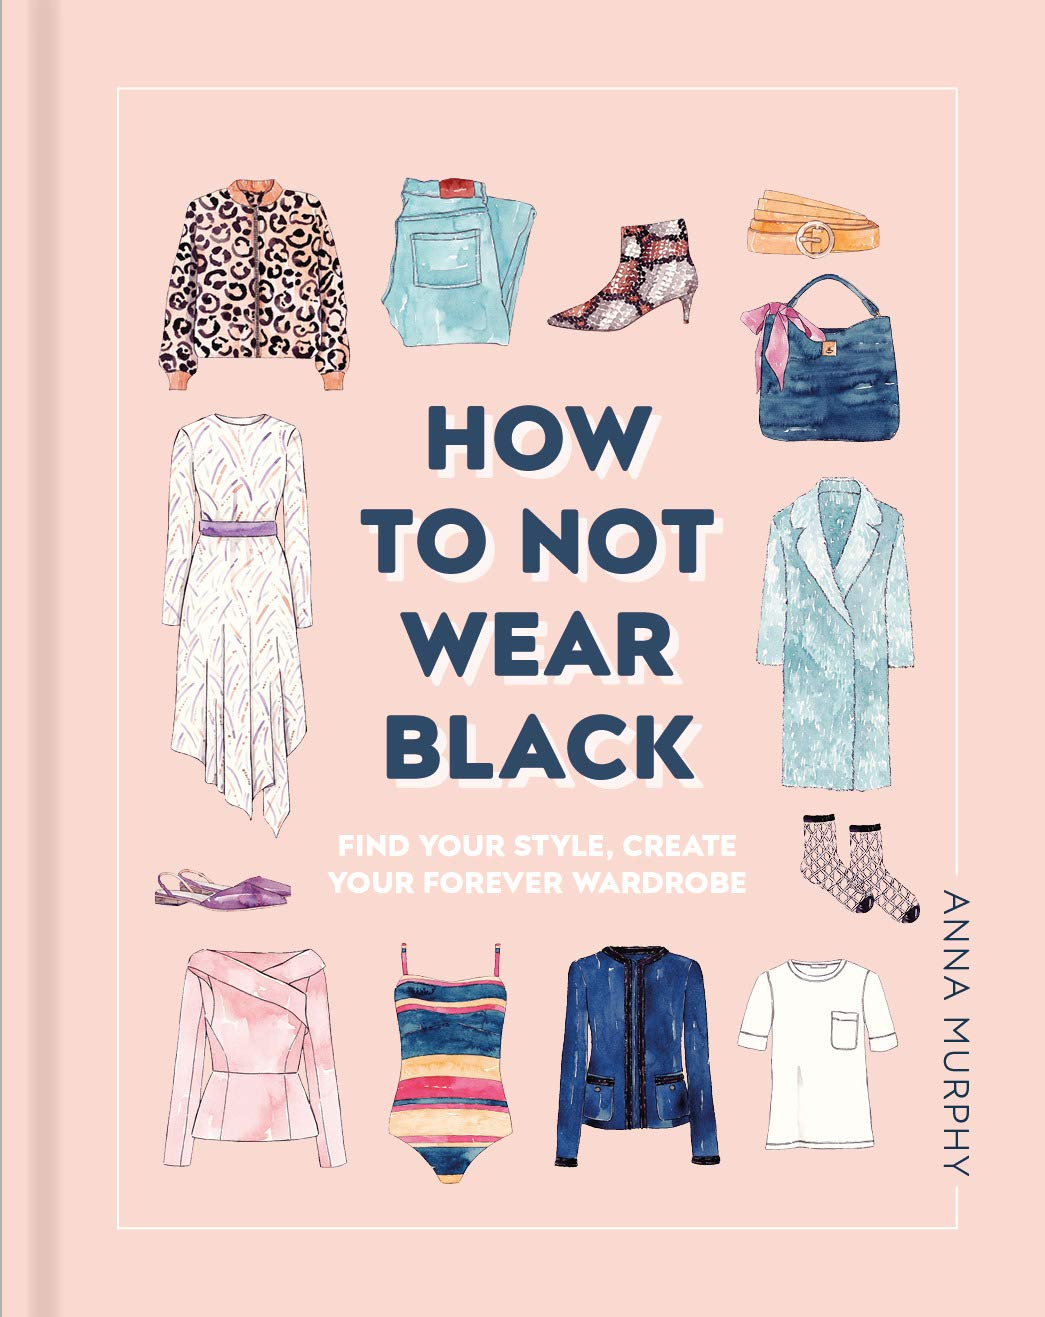 6c18bc5d8e How to Not Wear Black: Find Your Style and Create Your Forever ...